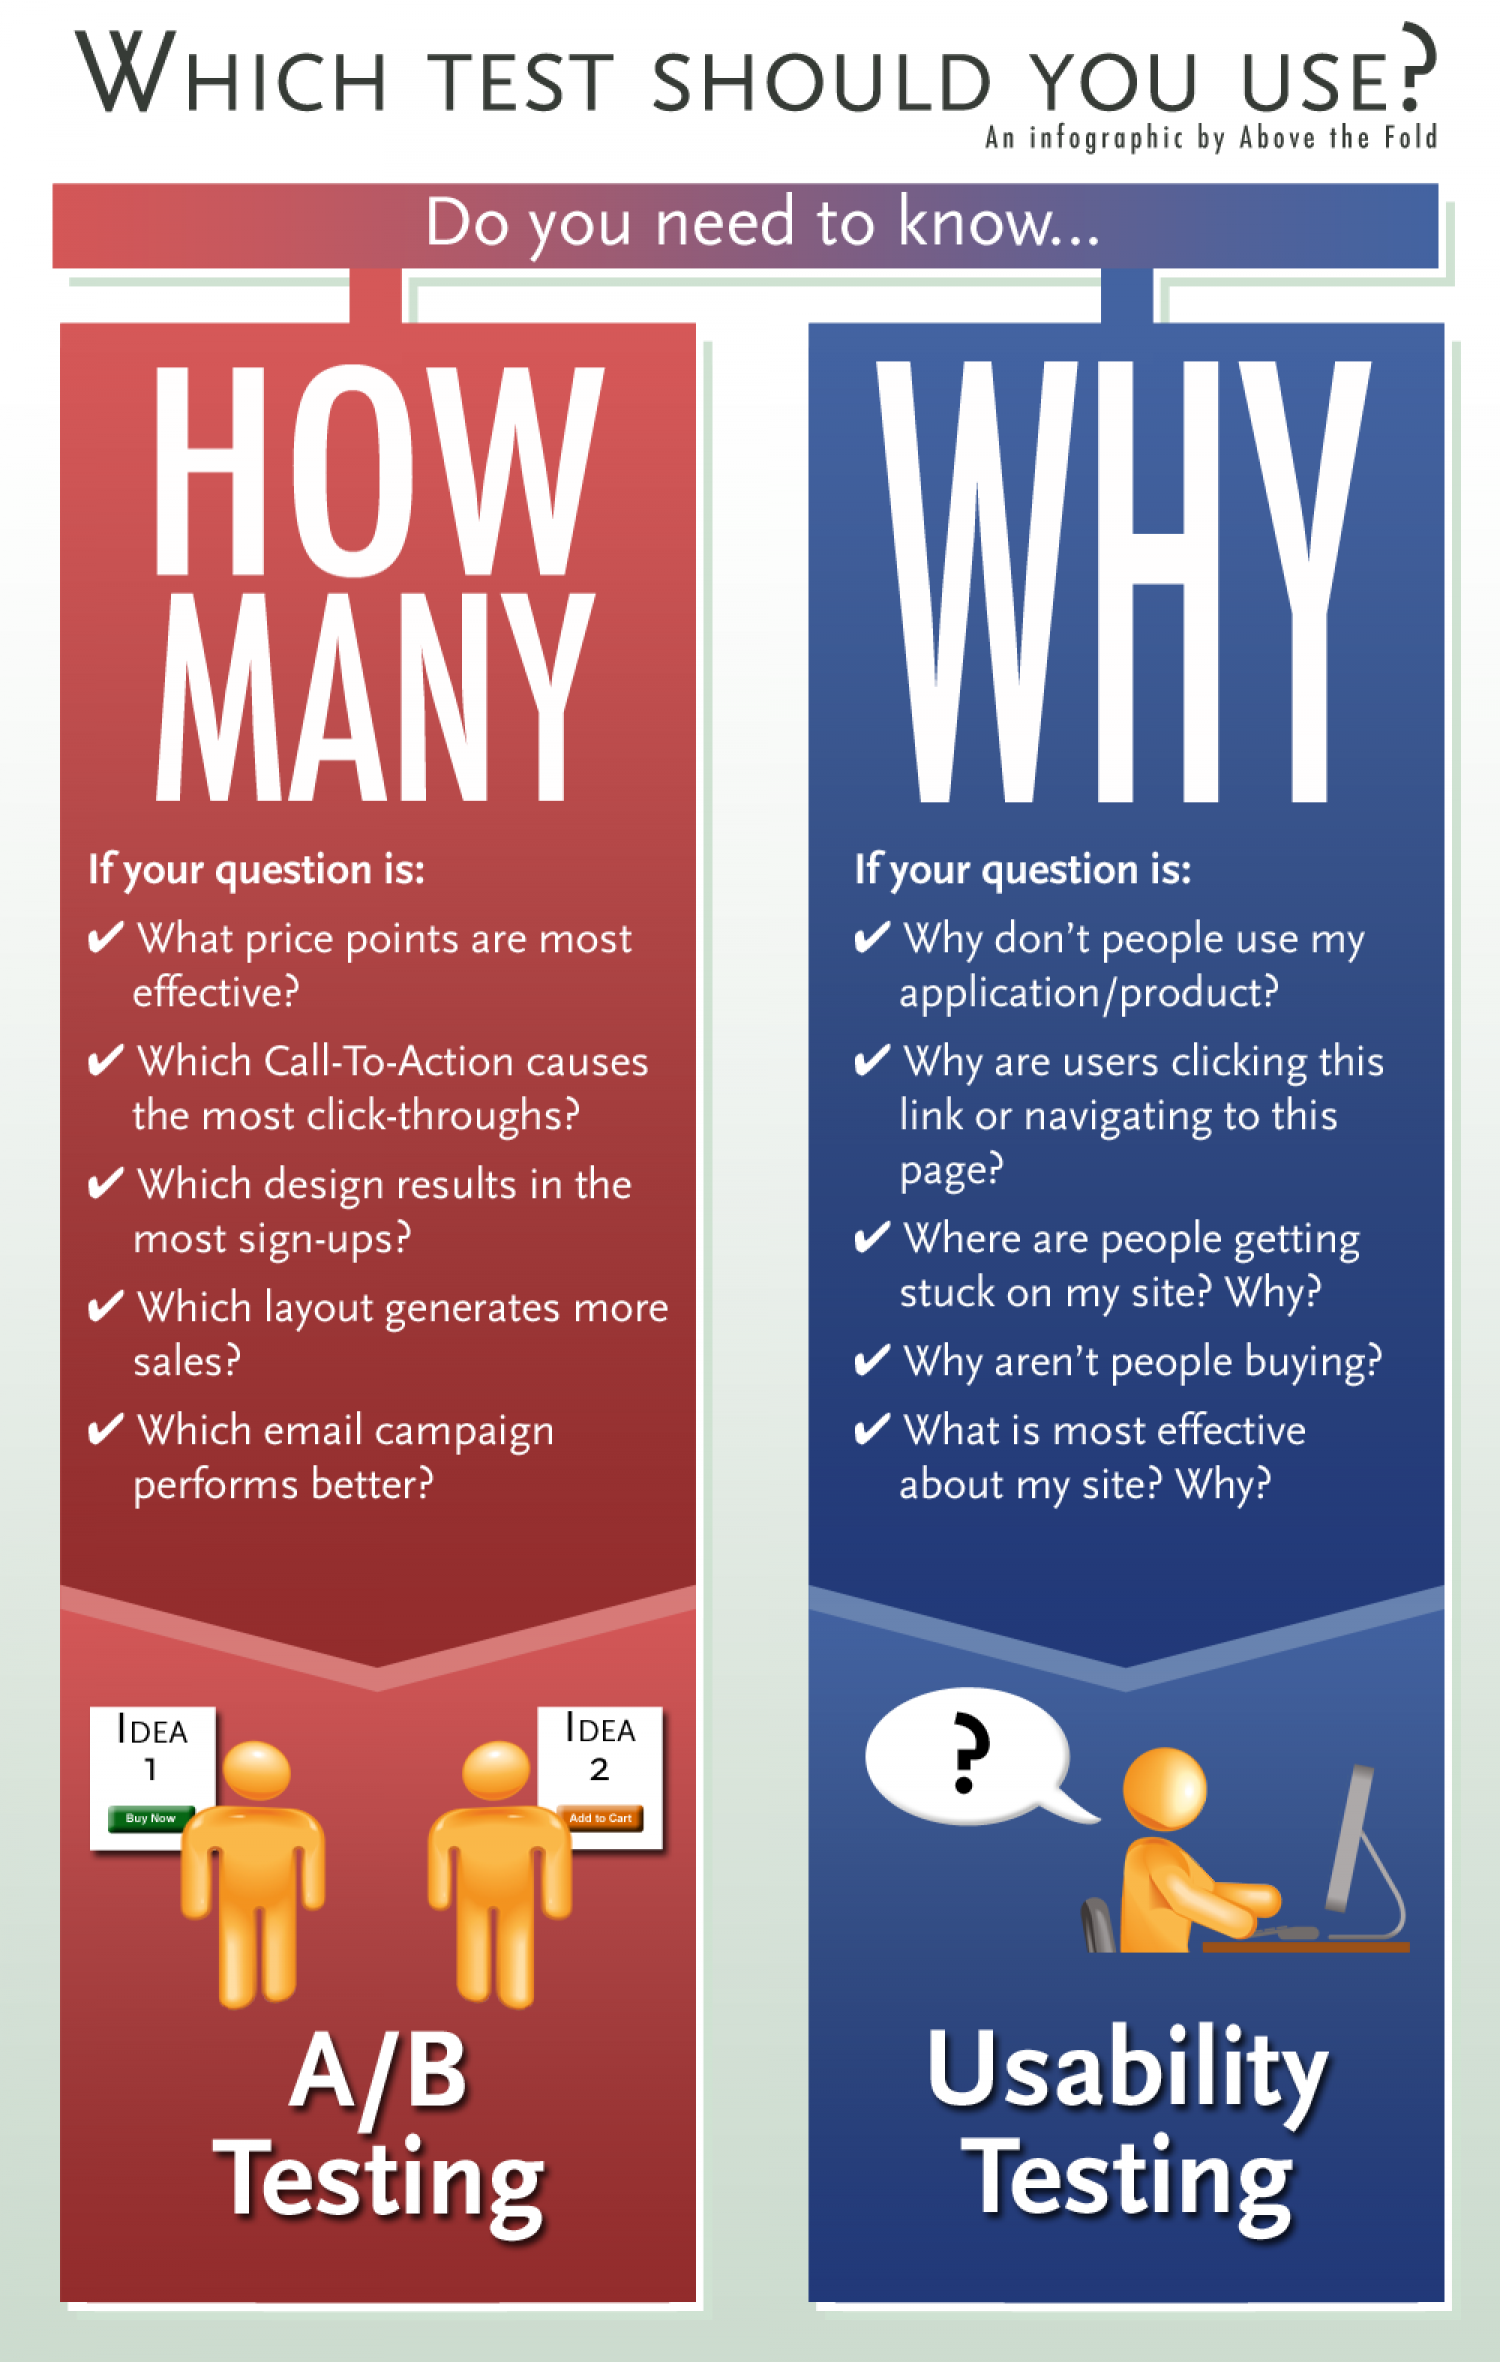 A/B Split Testing vs. Usability Testing Infographic